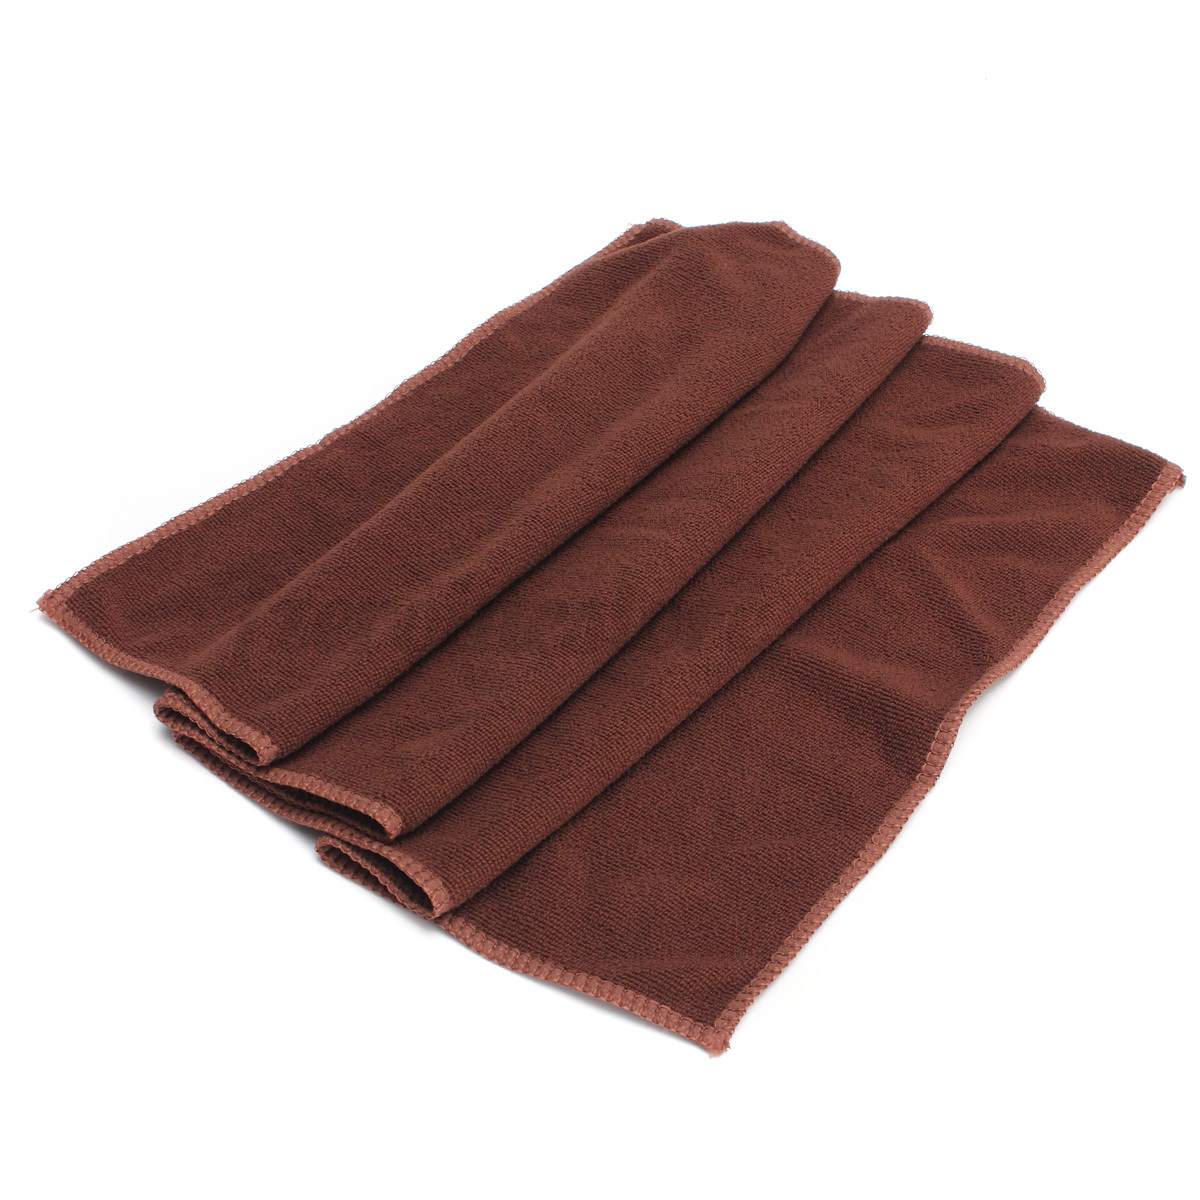 Dry Washcloths: Microfibre Soft Towels Absorbent Quick Dry Sports Travel